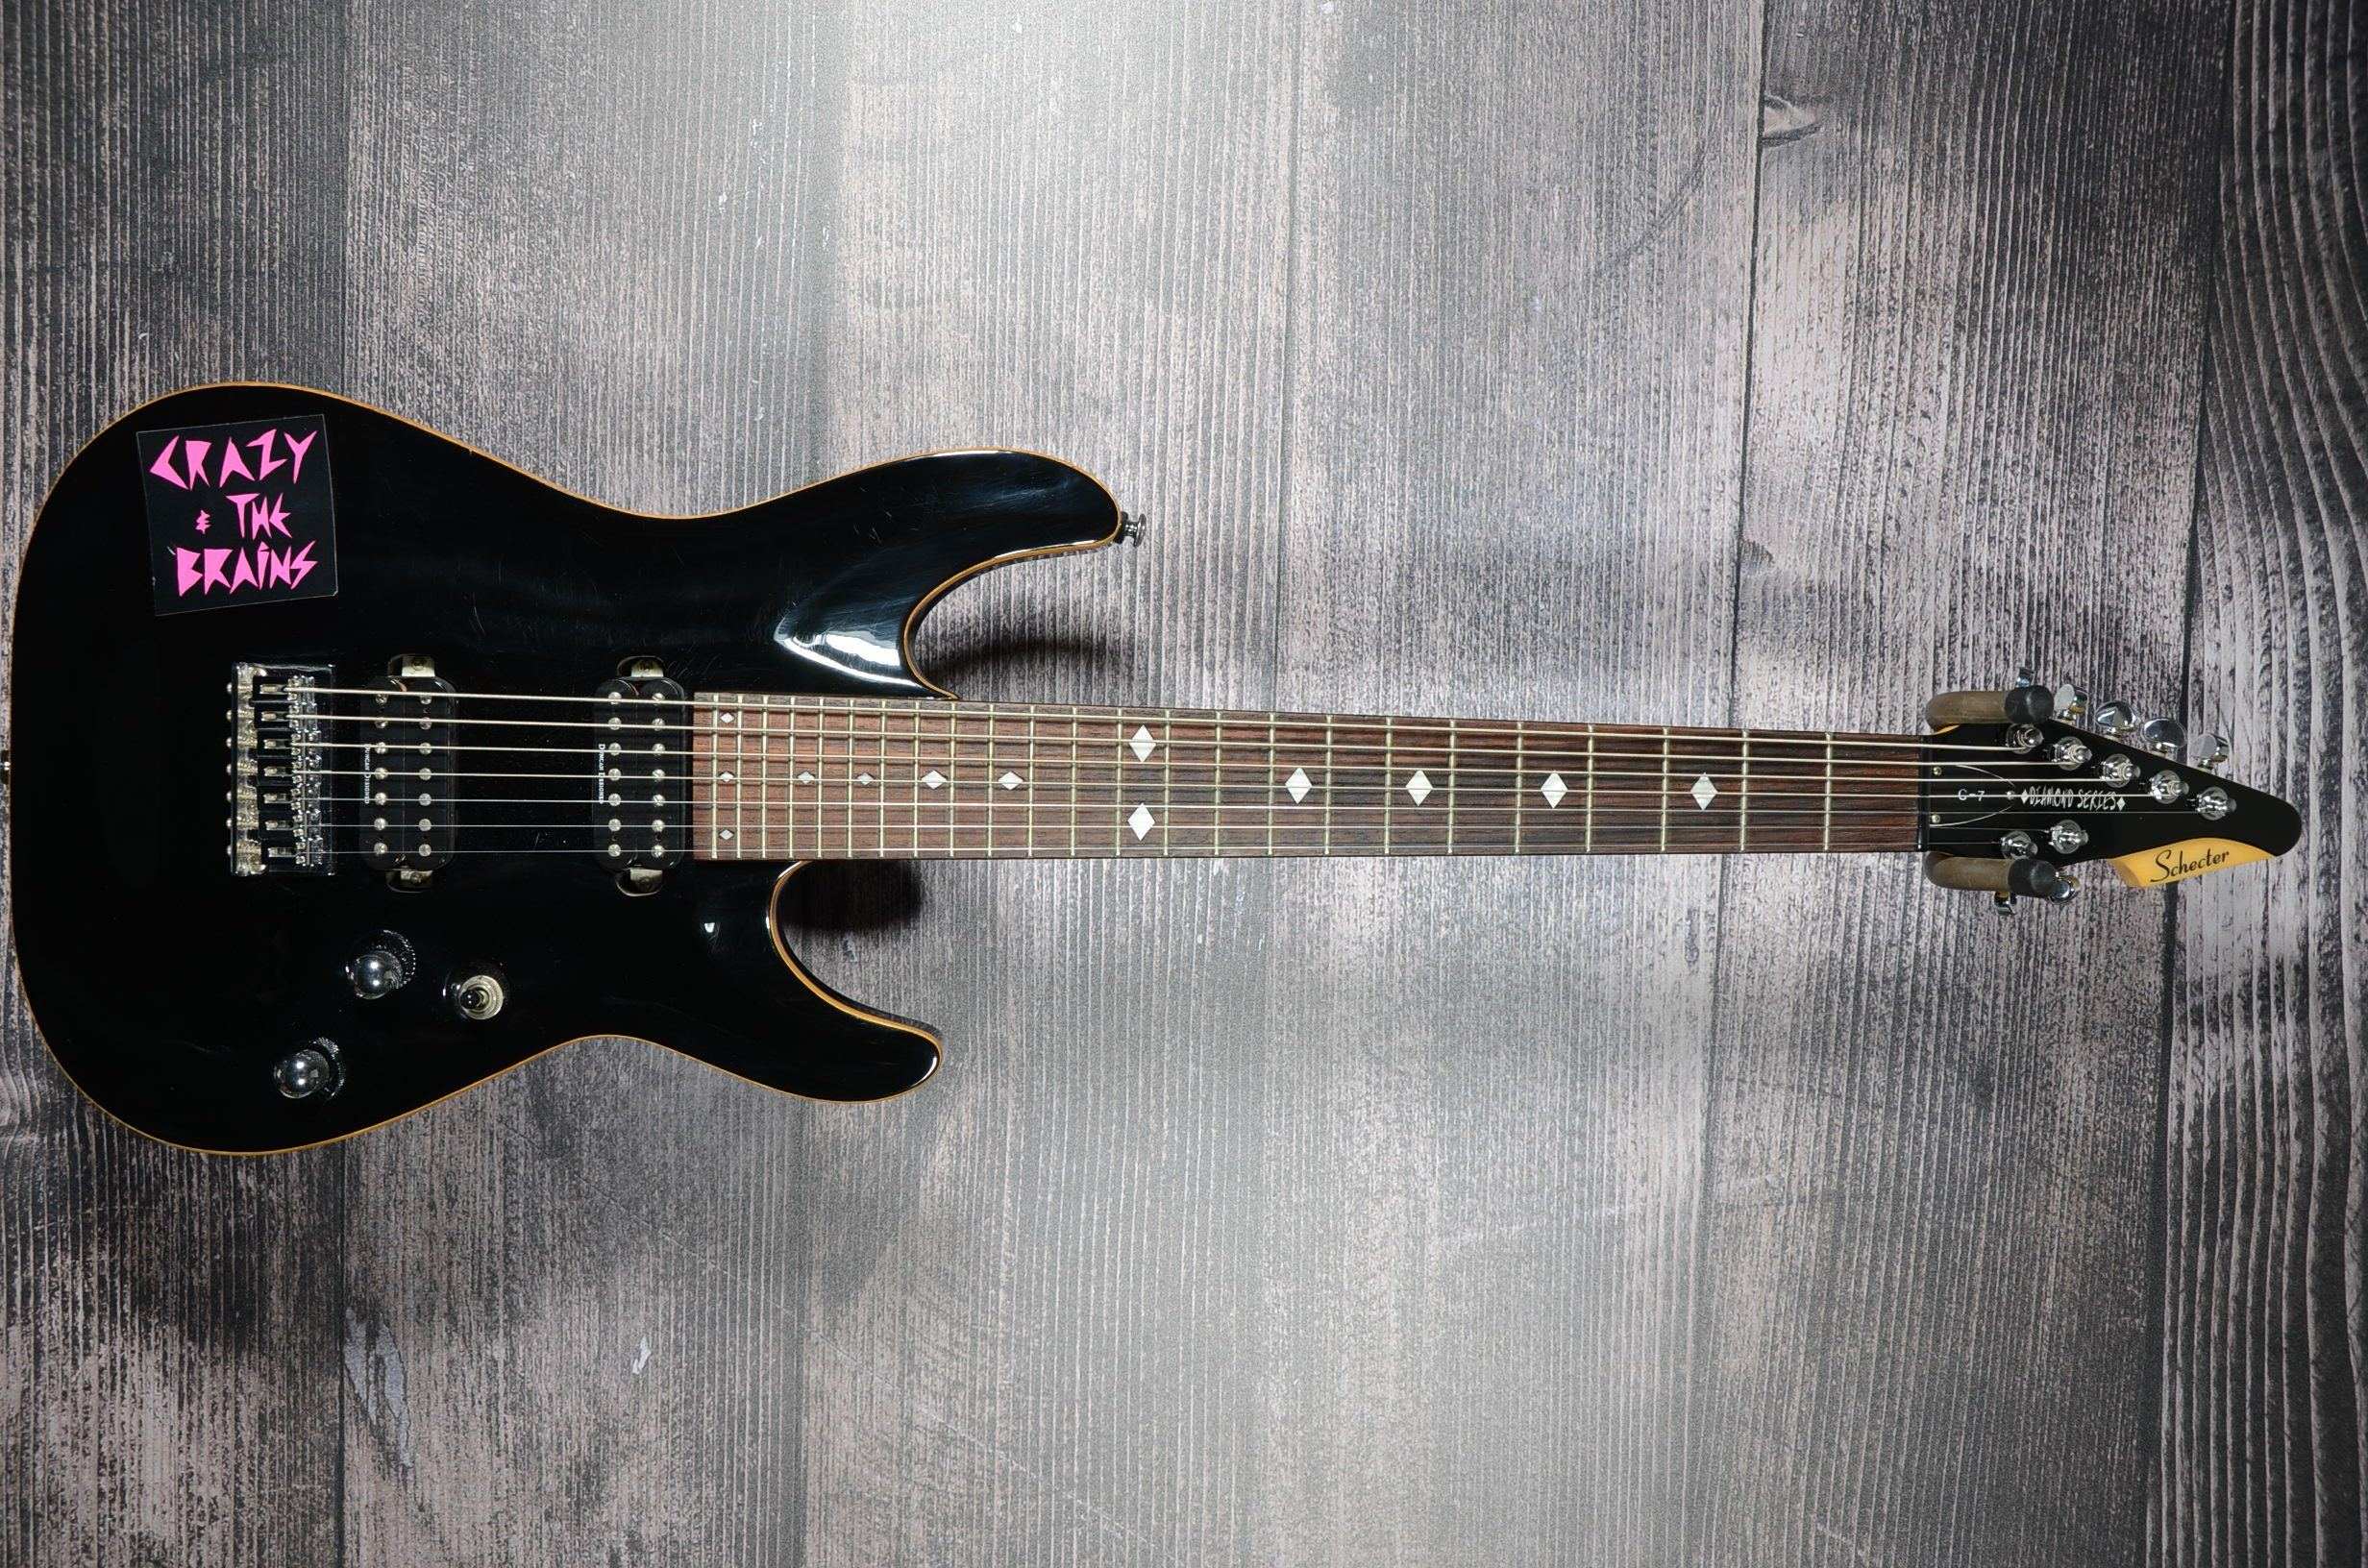 bc8aac26c6 ... Diamond Electric Guitar With Hard Shell Case. SKU: US0711038. DSC_56291